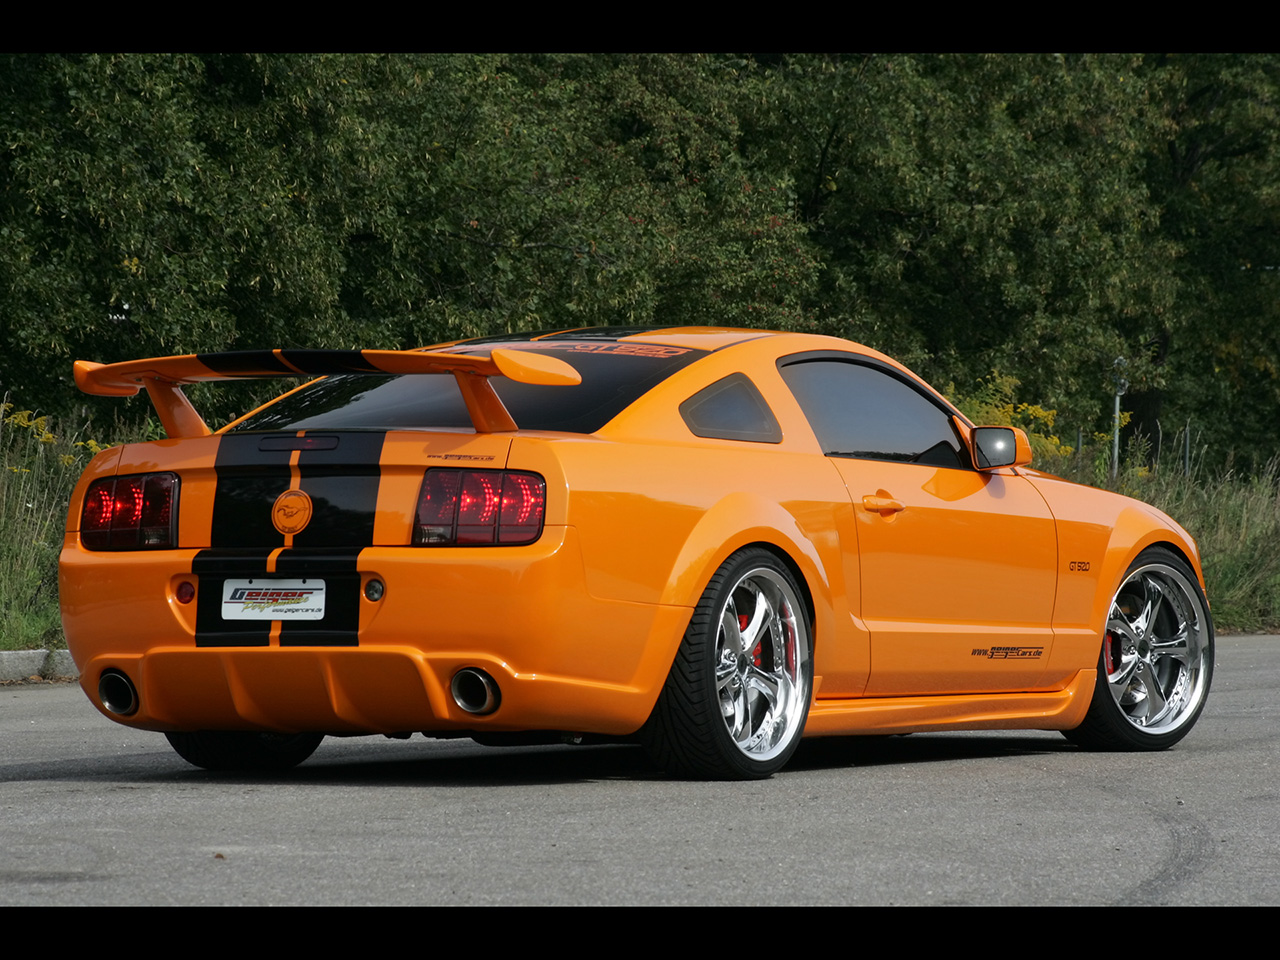 Ford Mustang backgrounds gallery EC15 1280x960